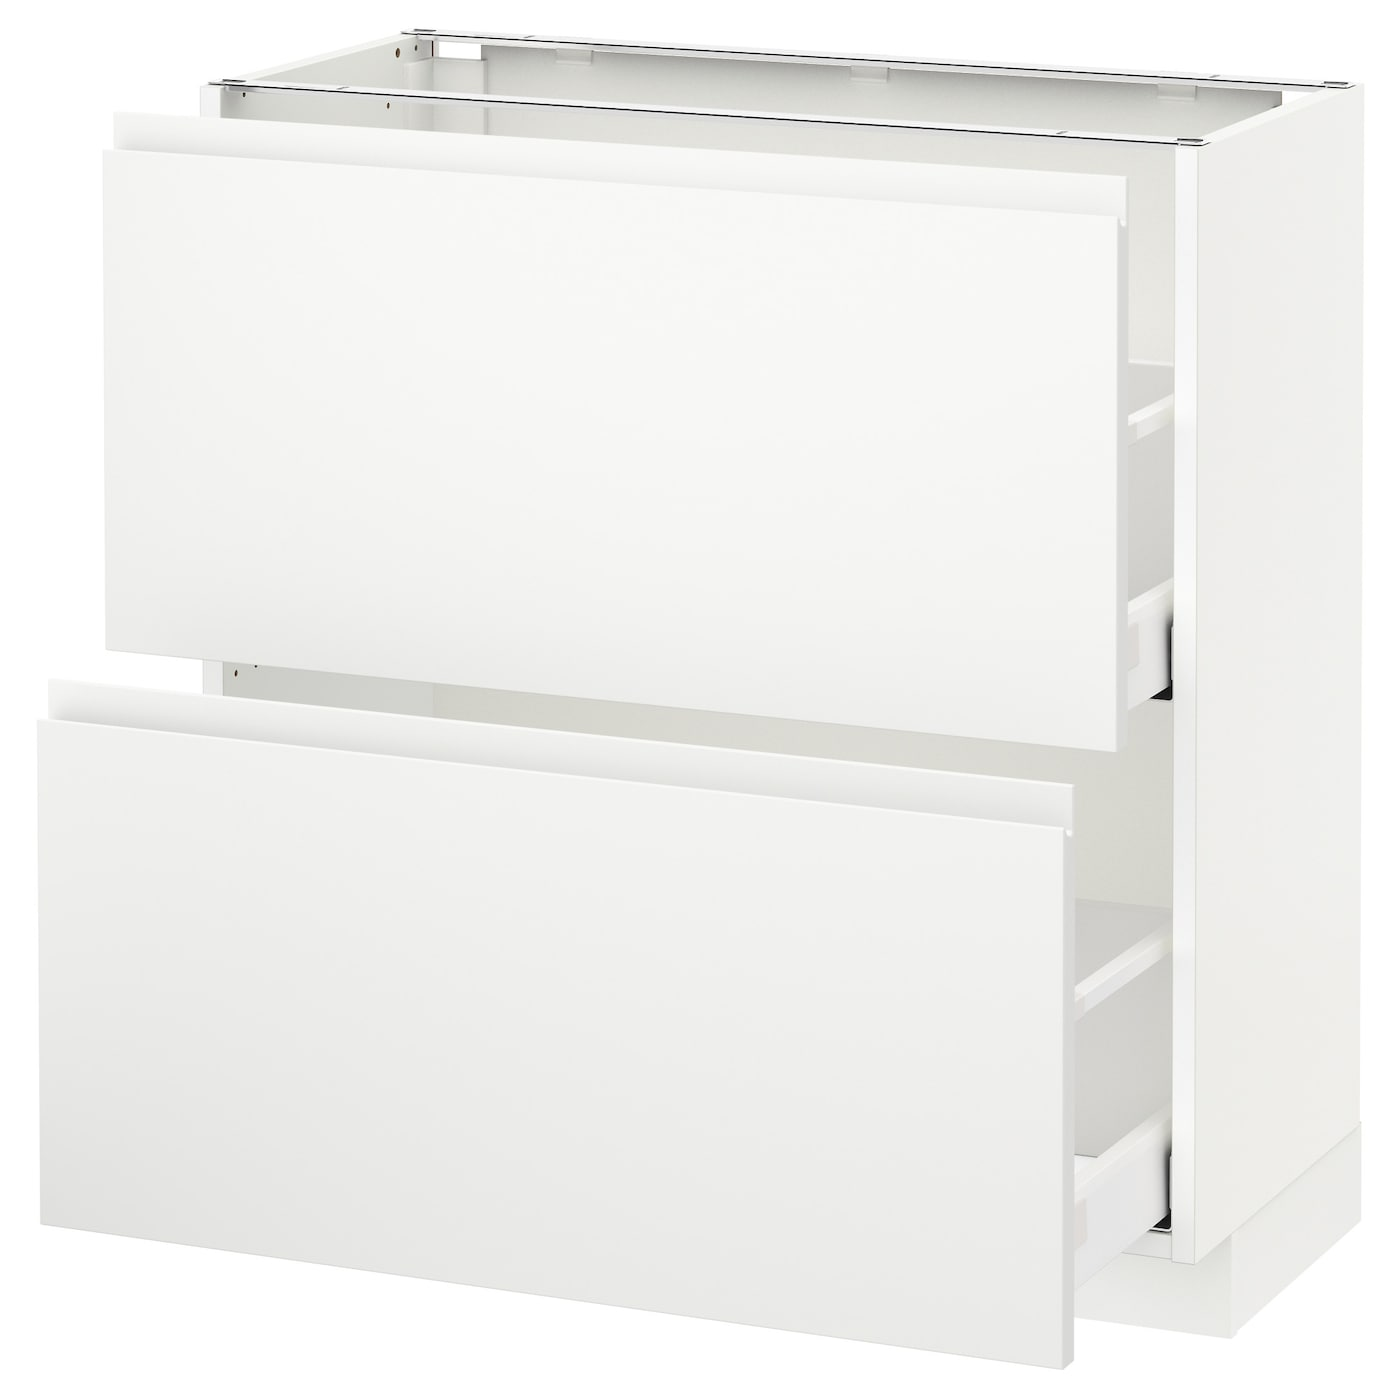 METOD/MAXIMERA Base cabinet with 2 drawers White/voxtorp matt white ...